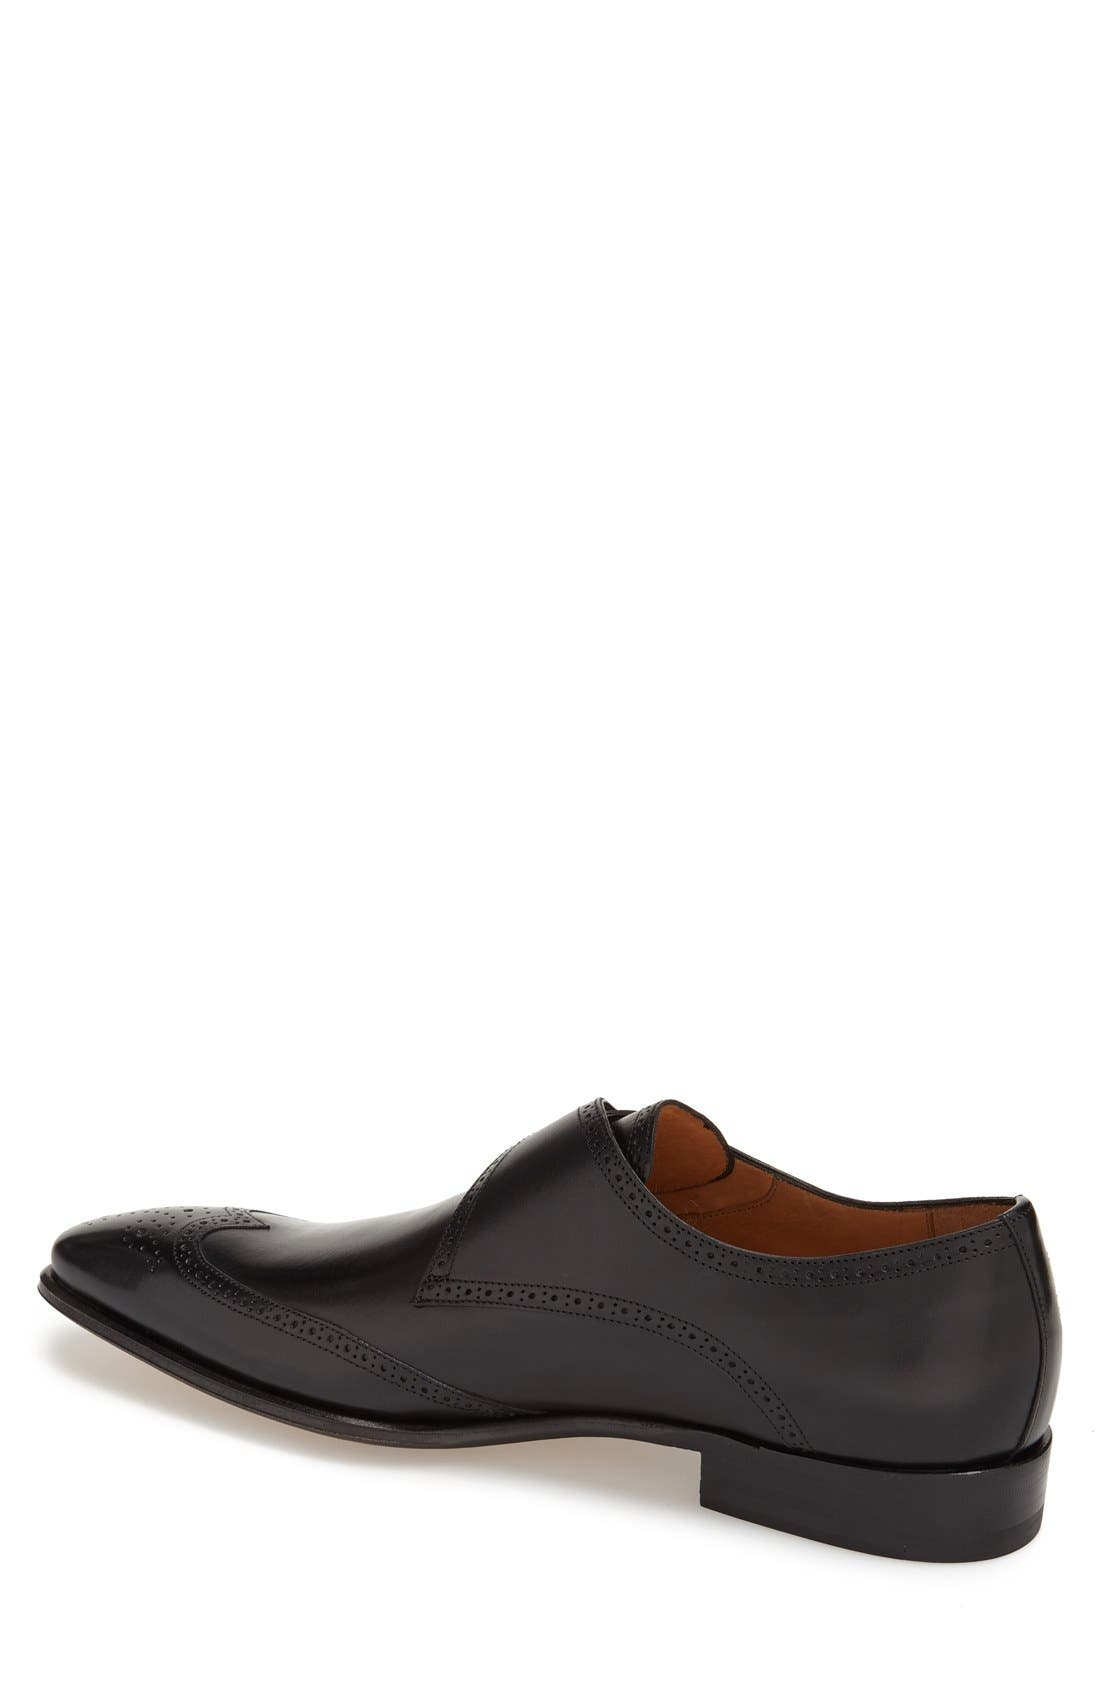 'Vitoria' Monk Strap Oxford,                             Alternate thumbnail 2, color,                             BLACK LEATHER